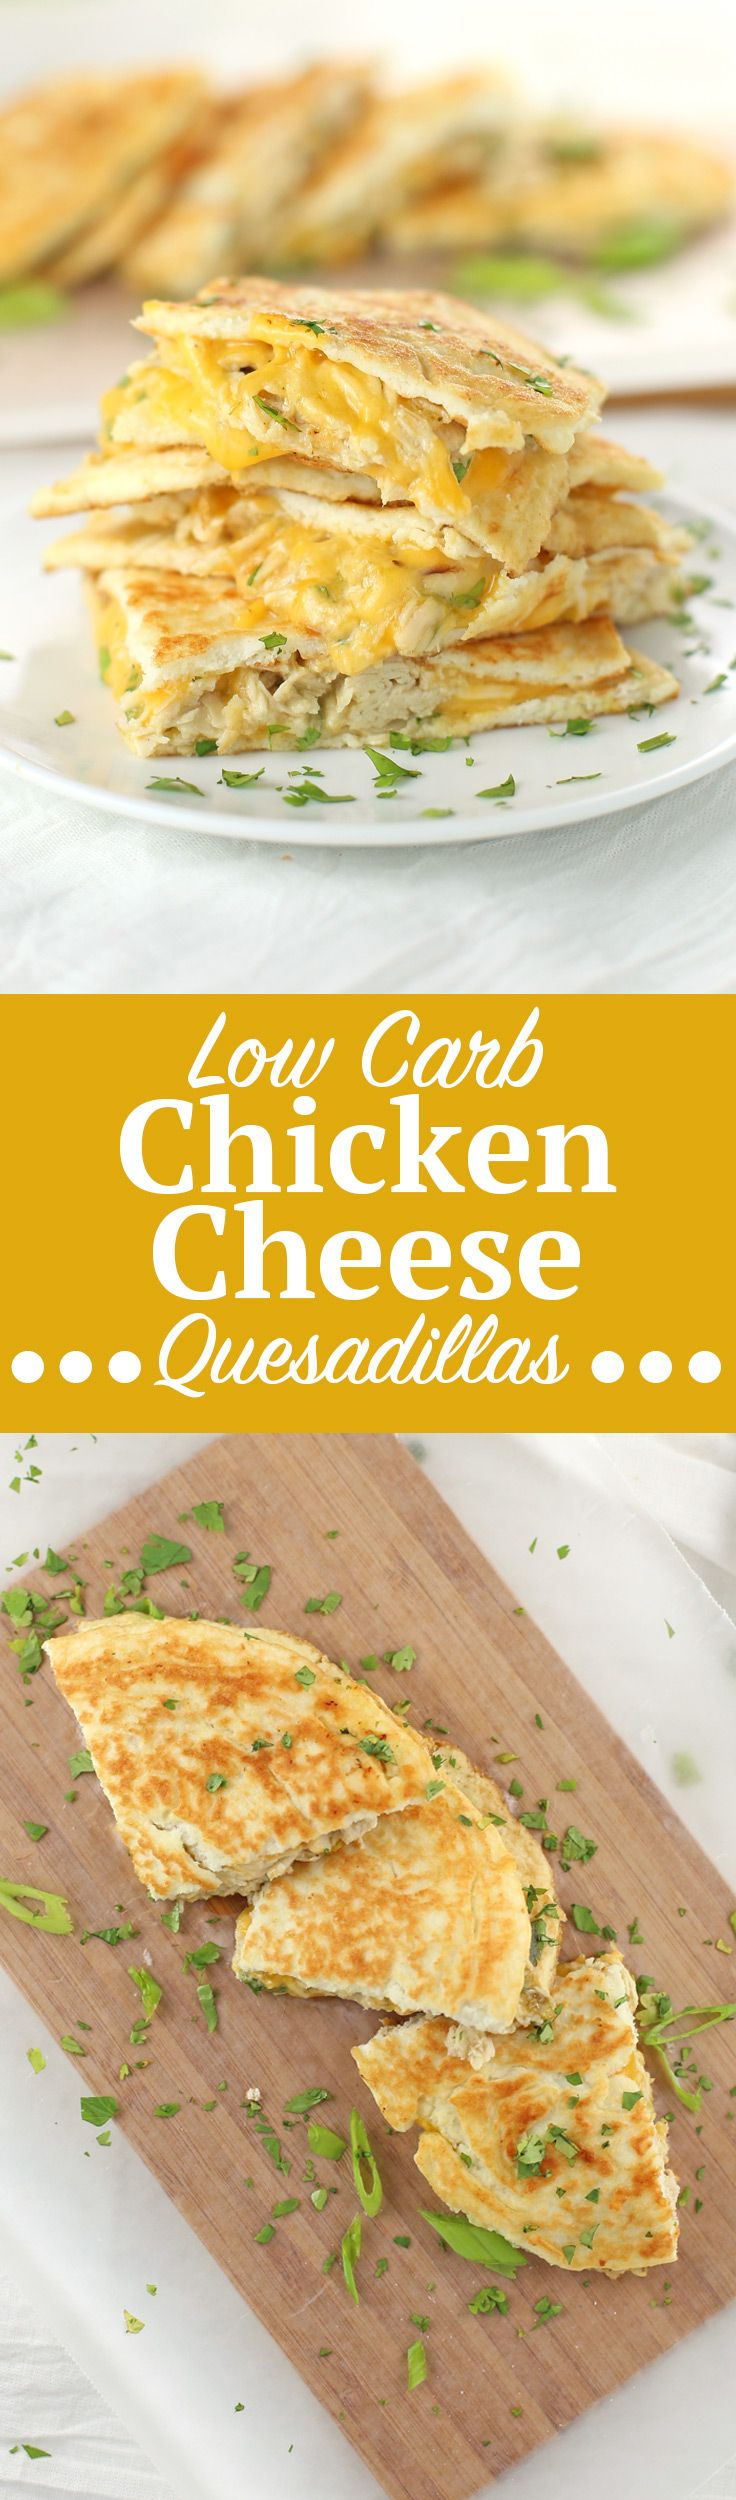 Low Carb Chicken and Cheese Quesadillas. Look out Cinco de Mayo, there's a new low carb quesadilla recipe in town! These Low Carb Chicken and Cheese Quesadillas are just 221 calories per serving and o (Chicken Recipes)